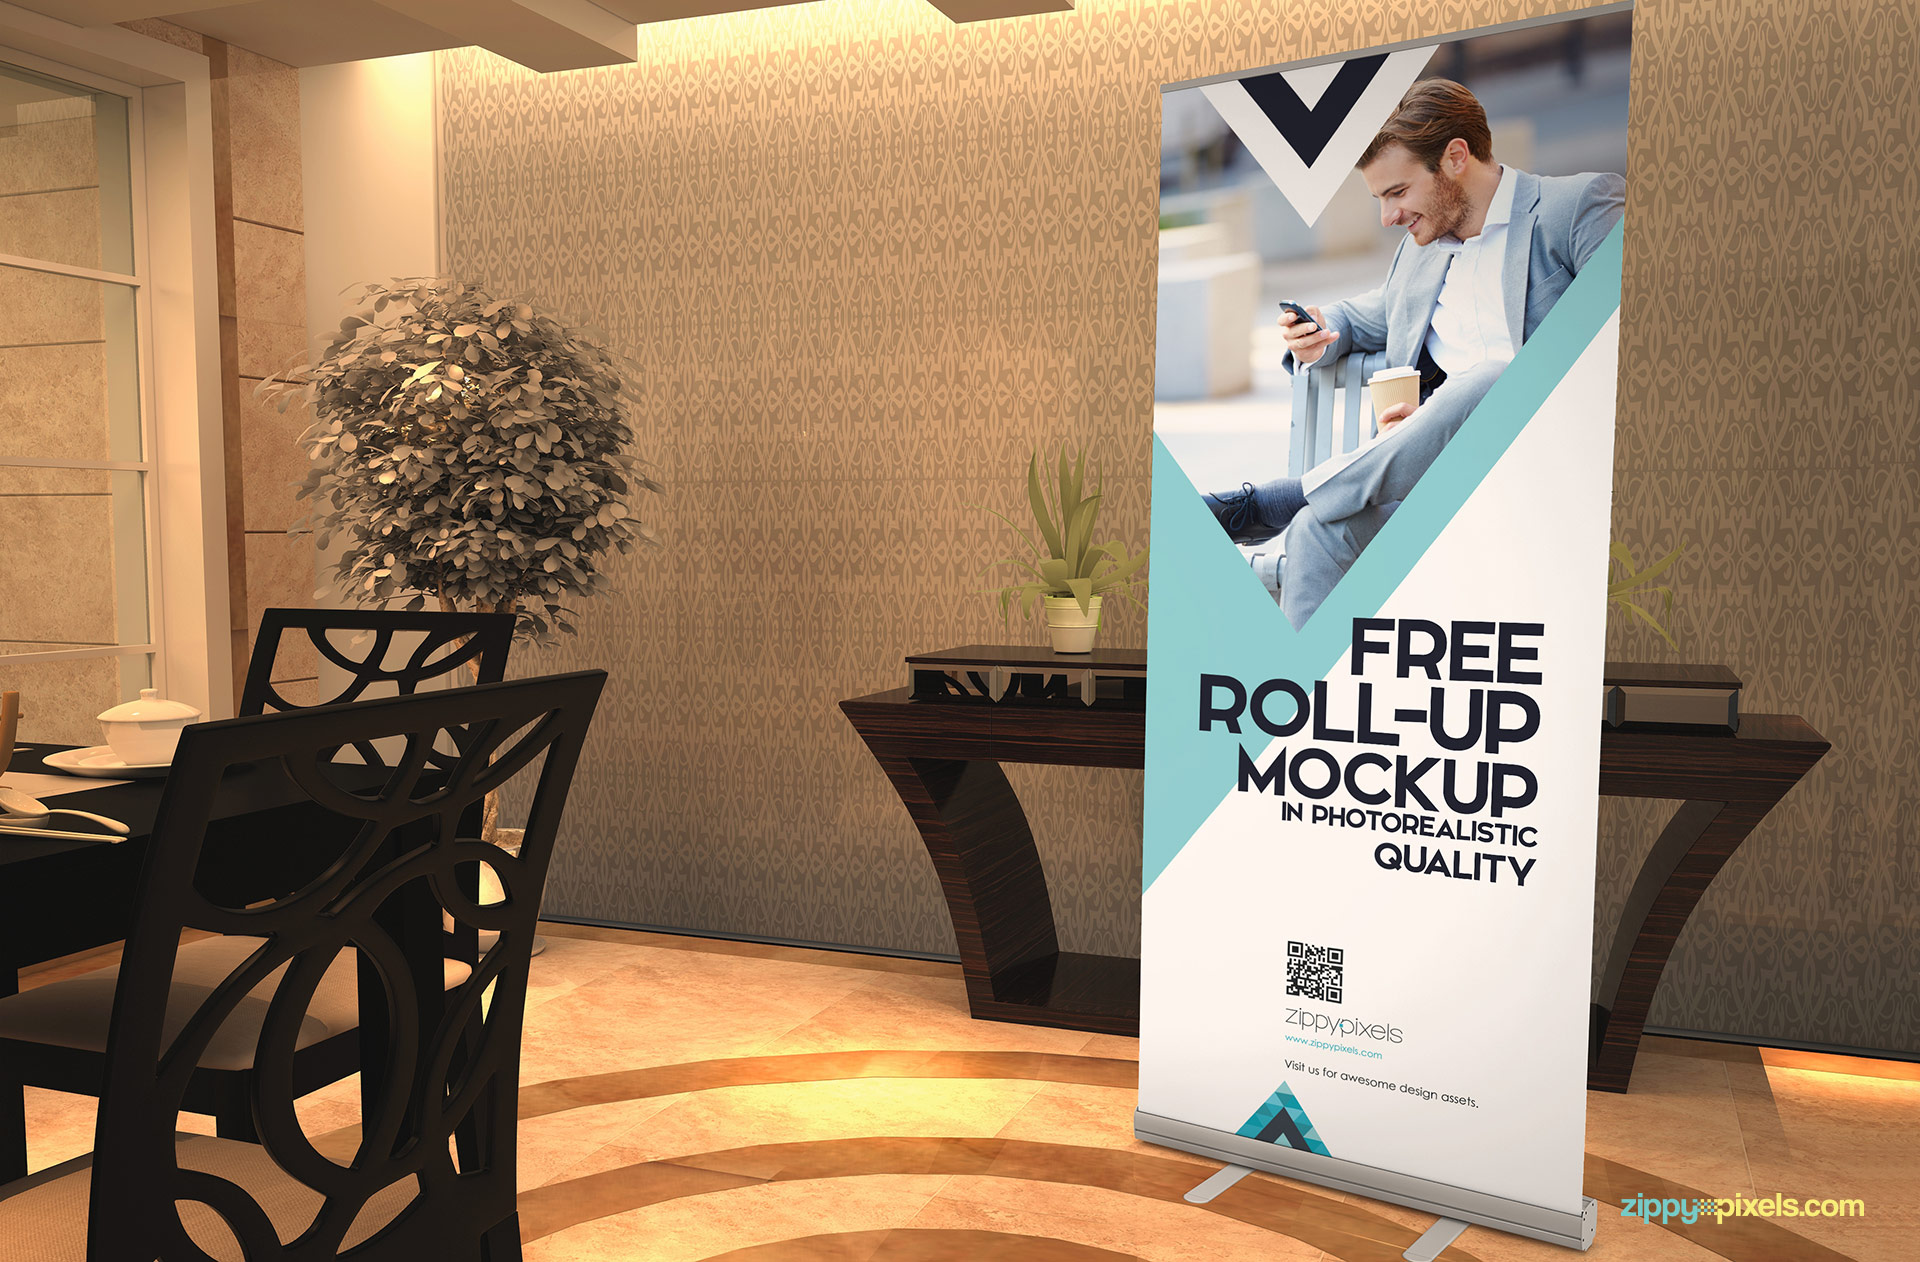 Free roll up banner mockup with the restaurant scene.